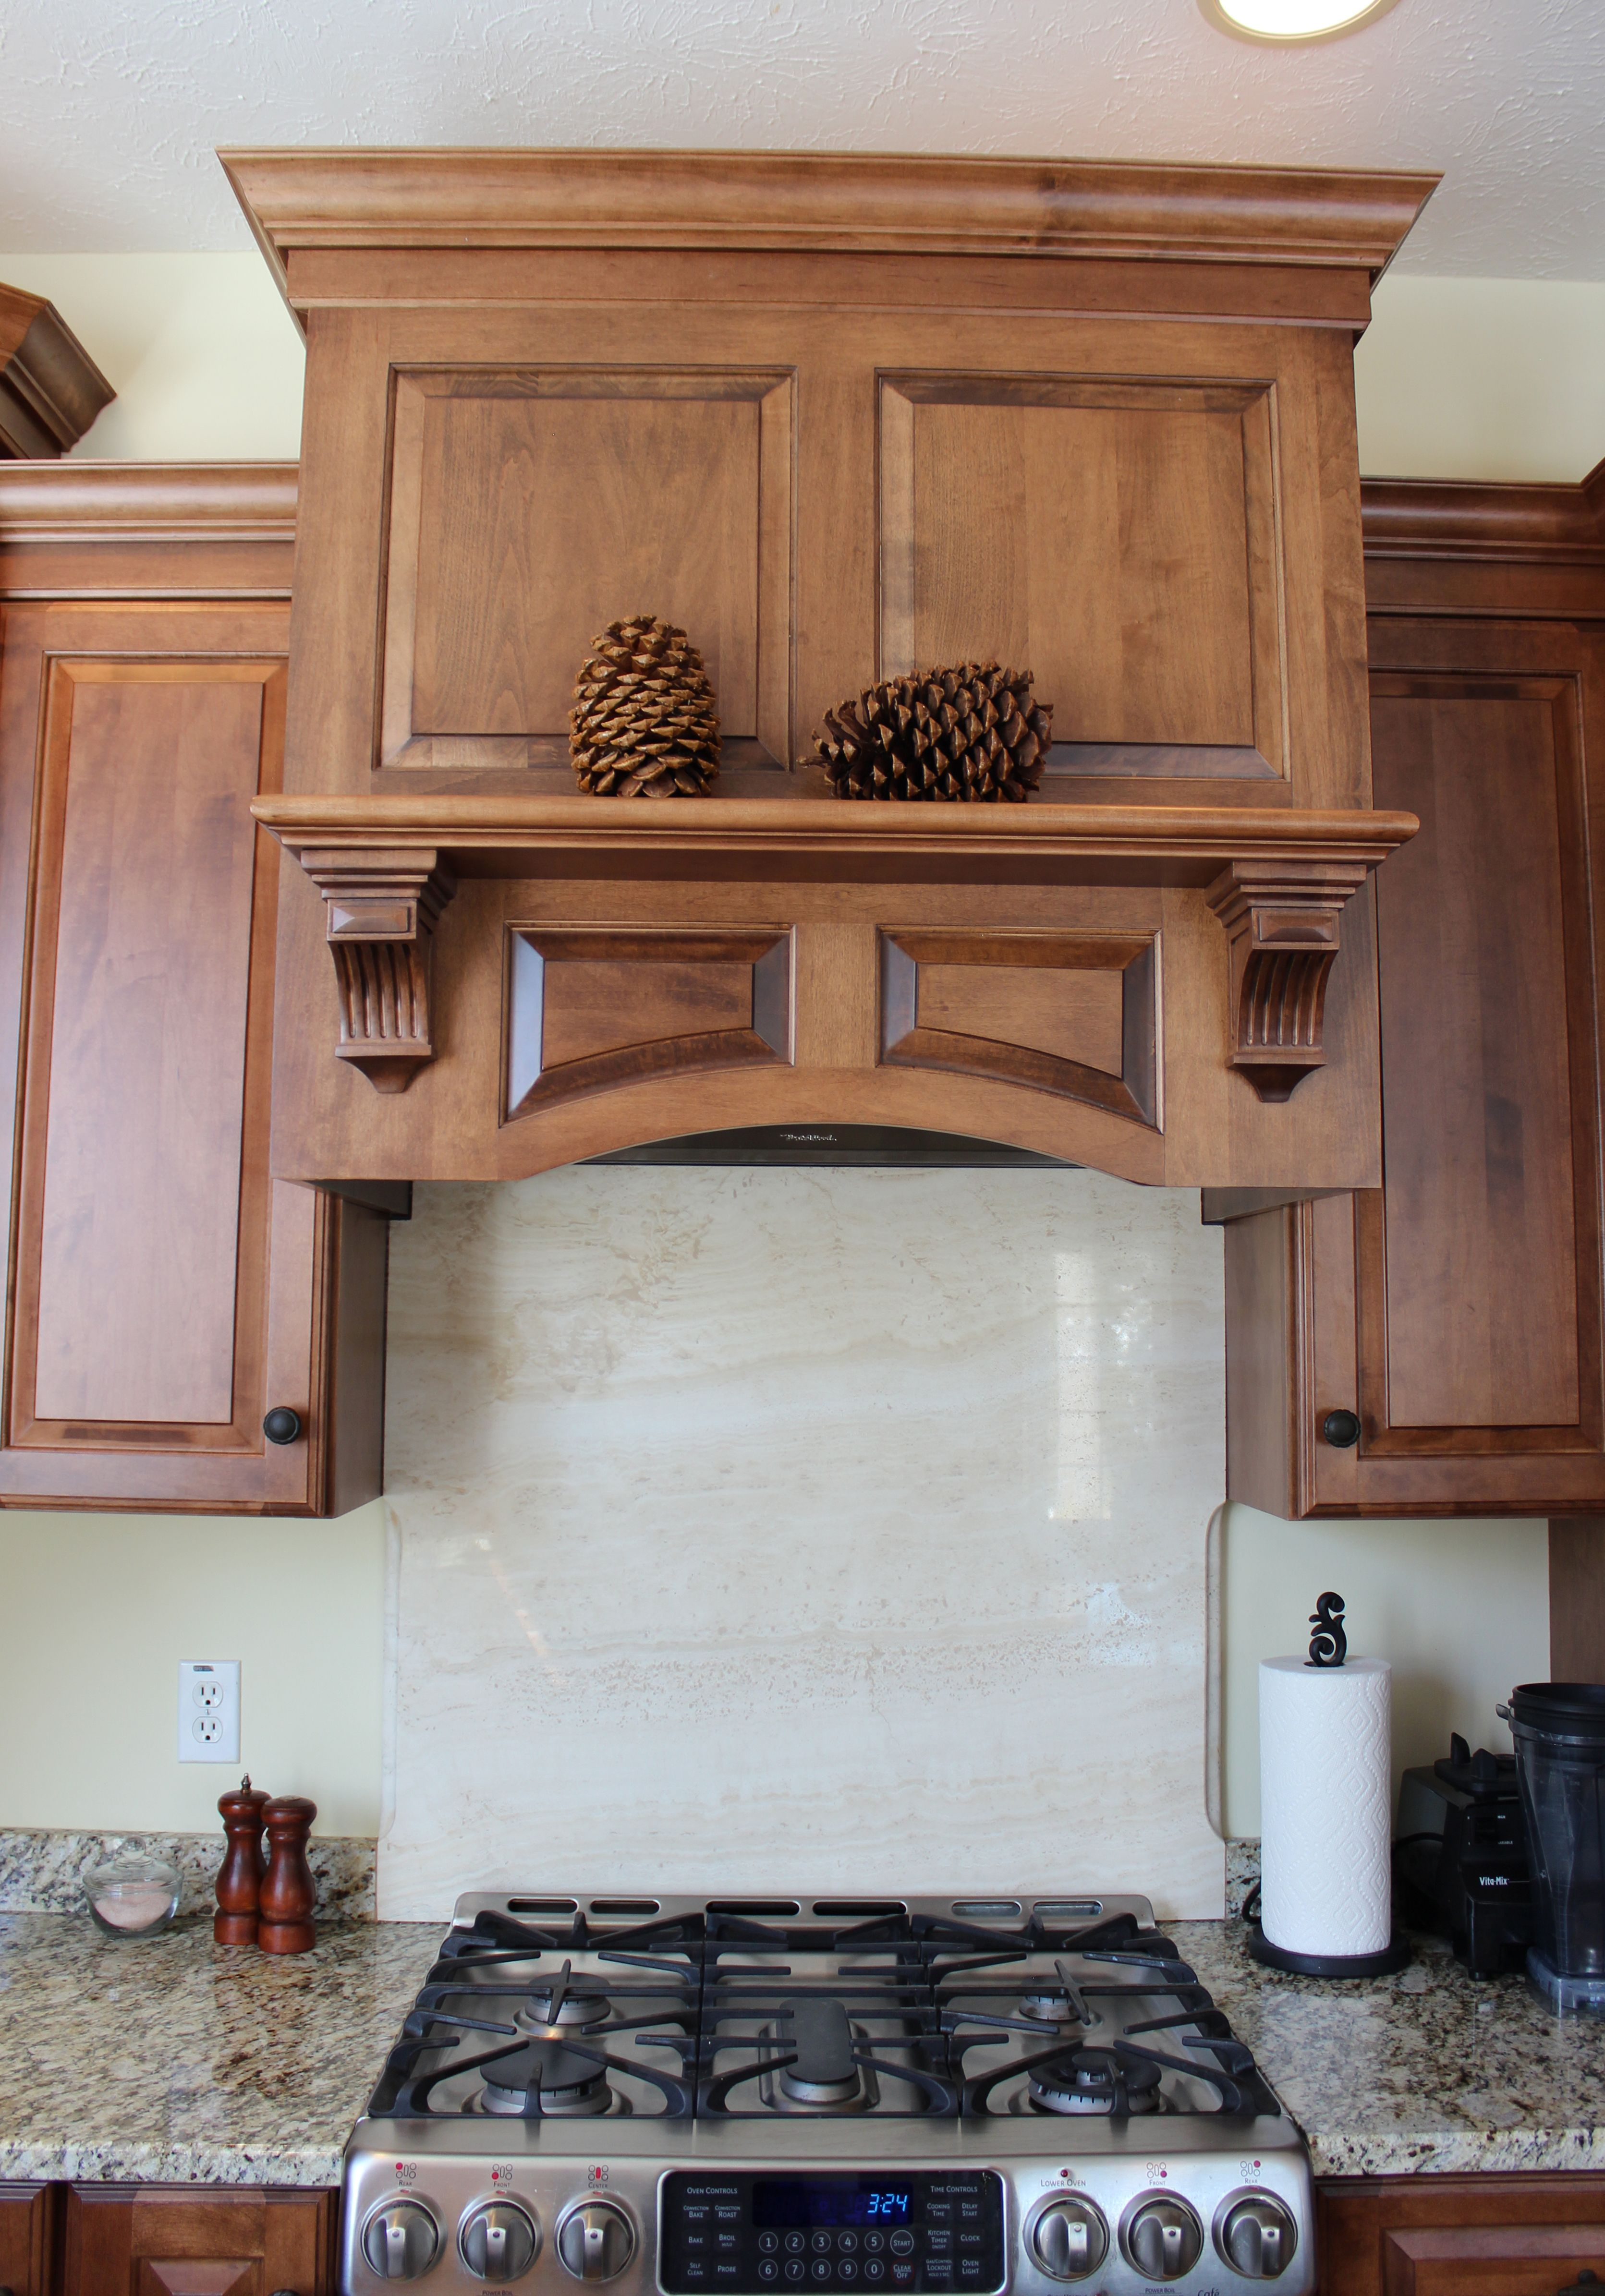 Medallion Kitchen Cabinets Aid Mixer Bowls Gold Maple Amaretto In The Brookhill